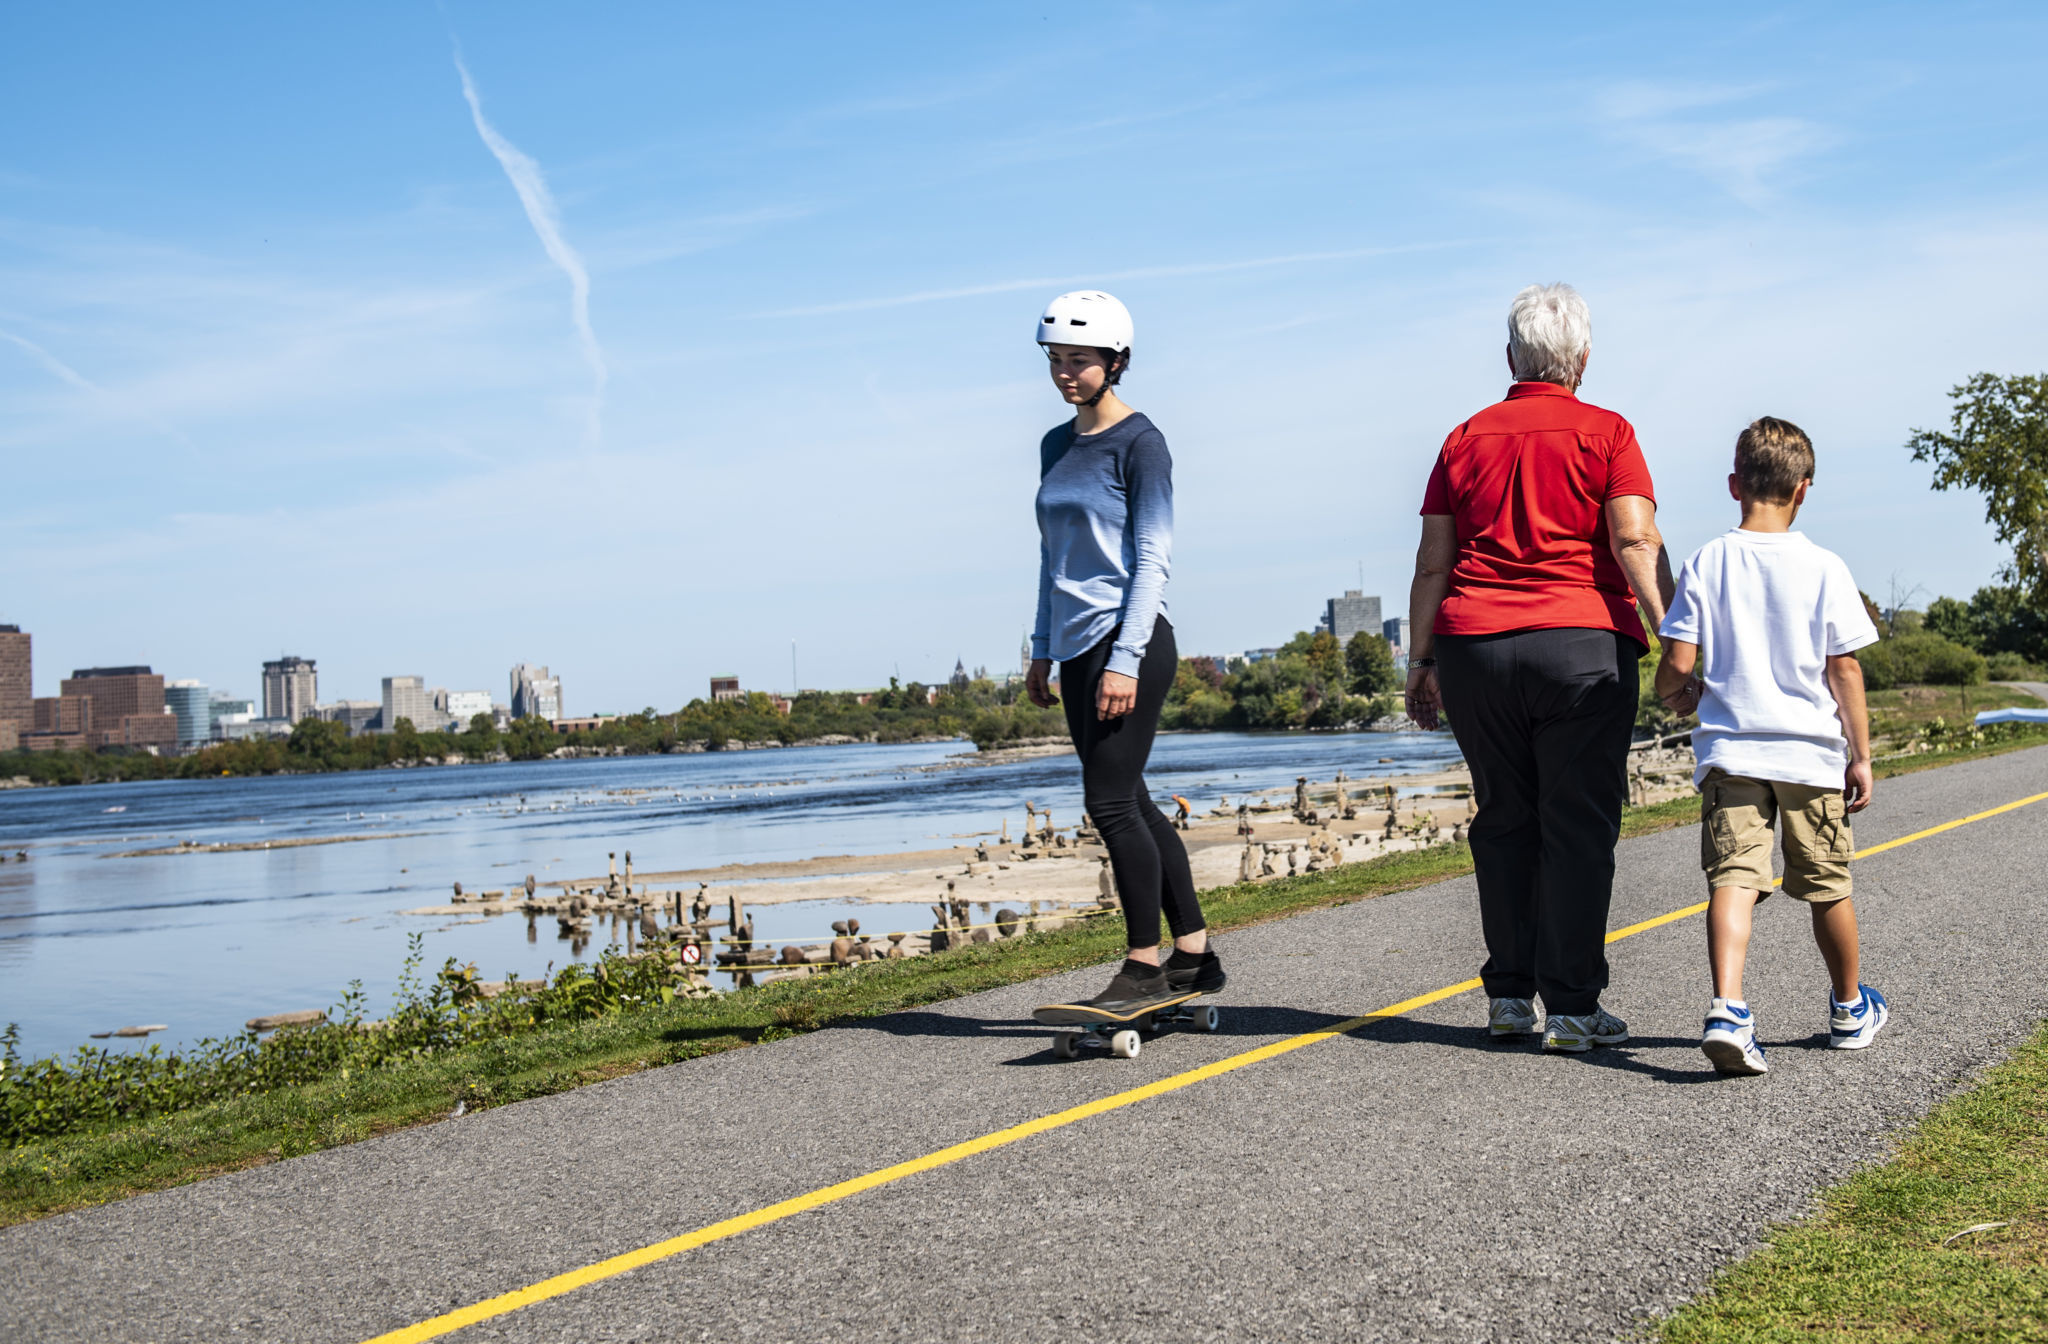 A skateboarder and two pedestrians on the pathway.